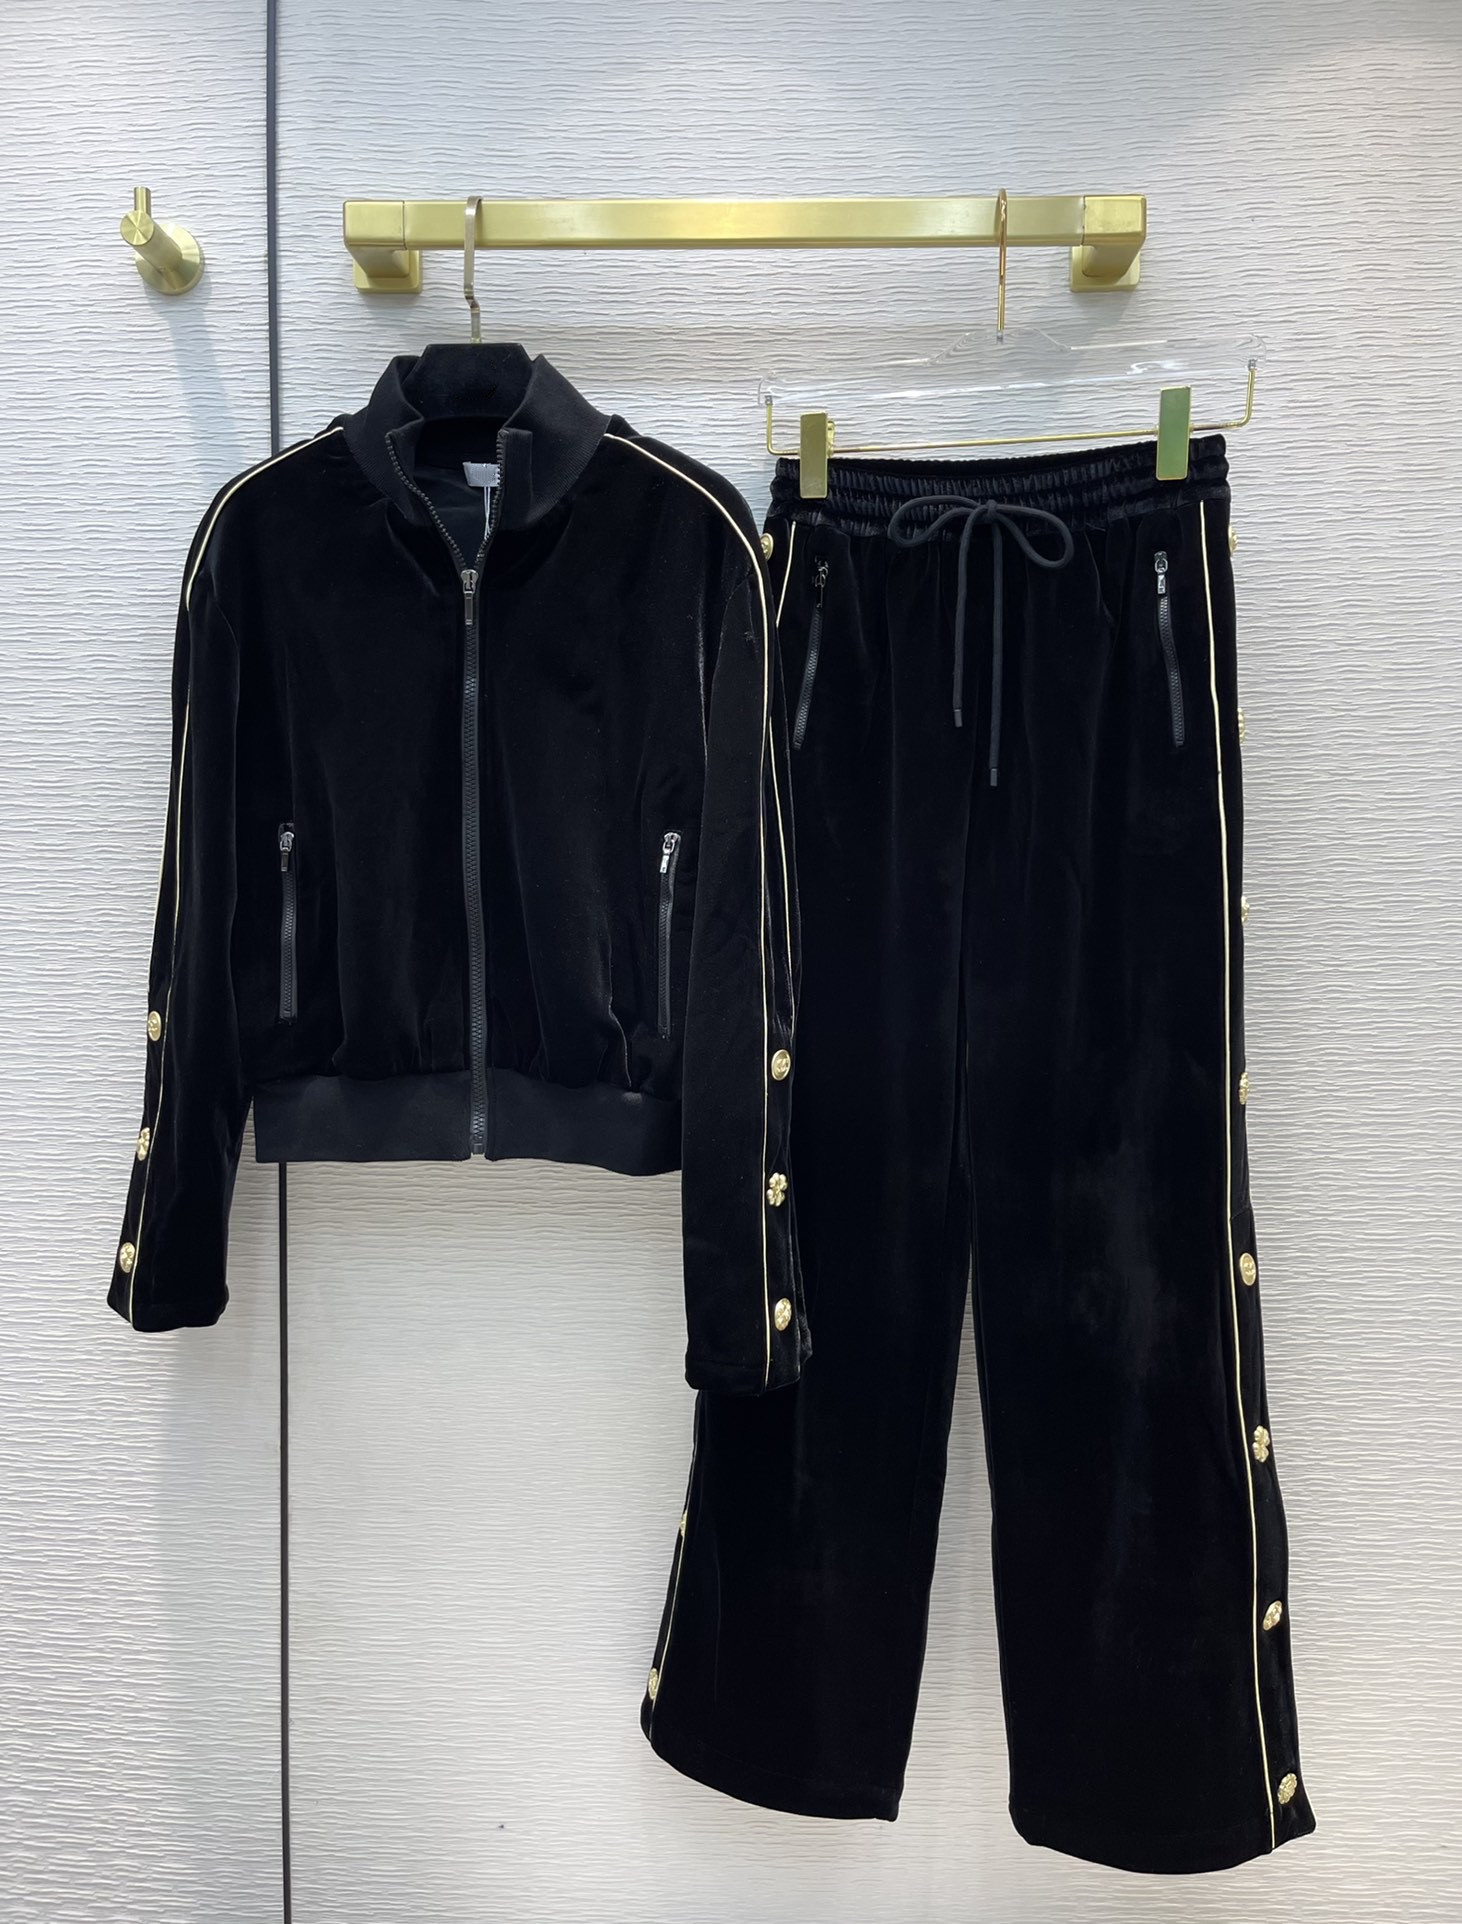 Women's Two Piece Pant 2021 Autumn Winter Fashion Beads Coat And Long pants Brand Same Style 2 Pieces Sets Women's 1007-11